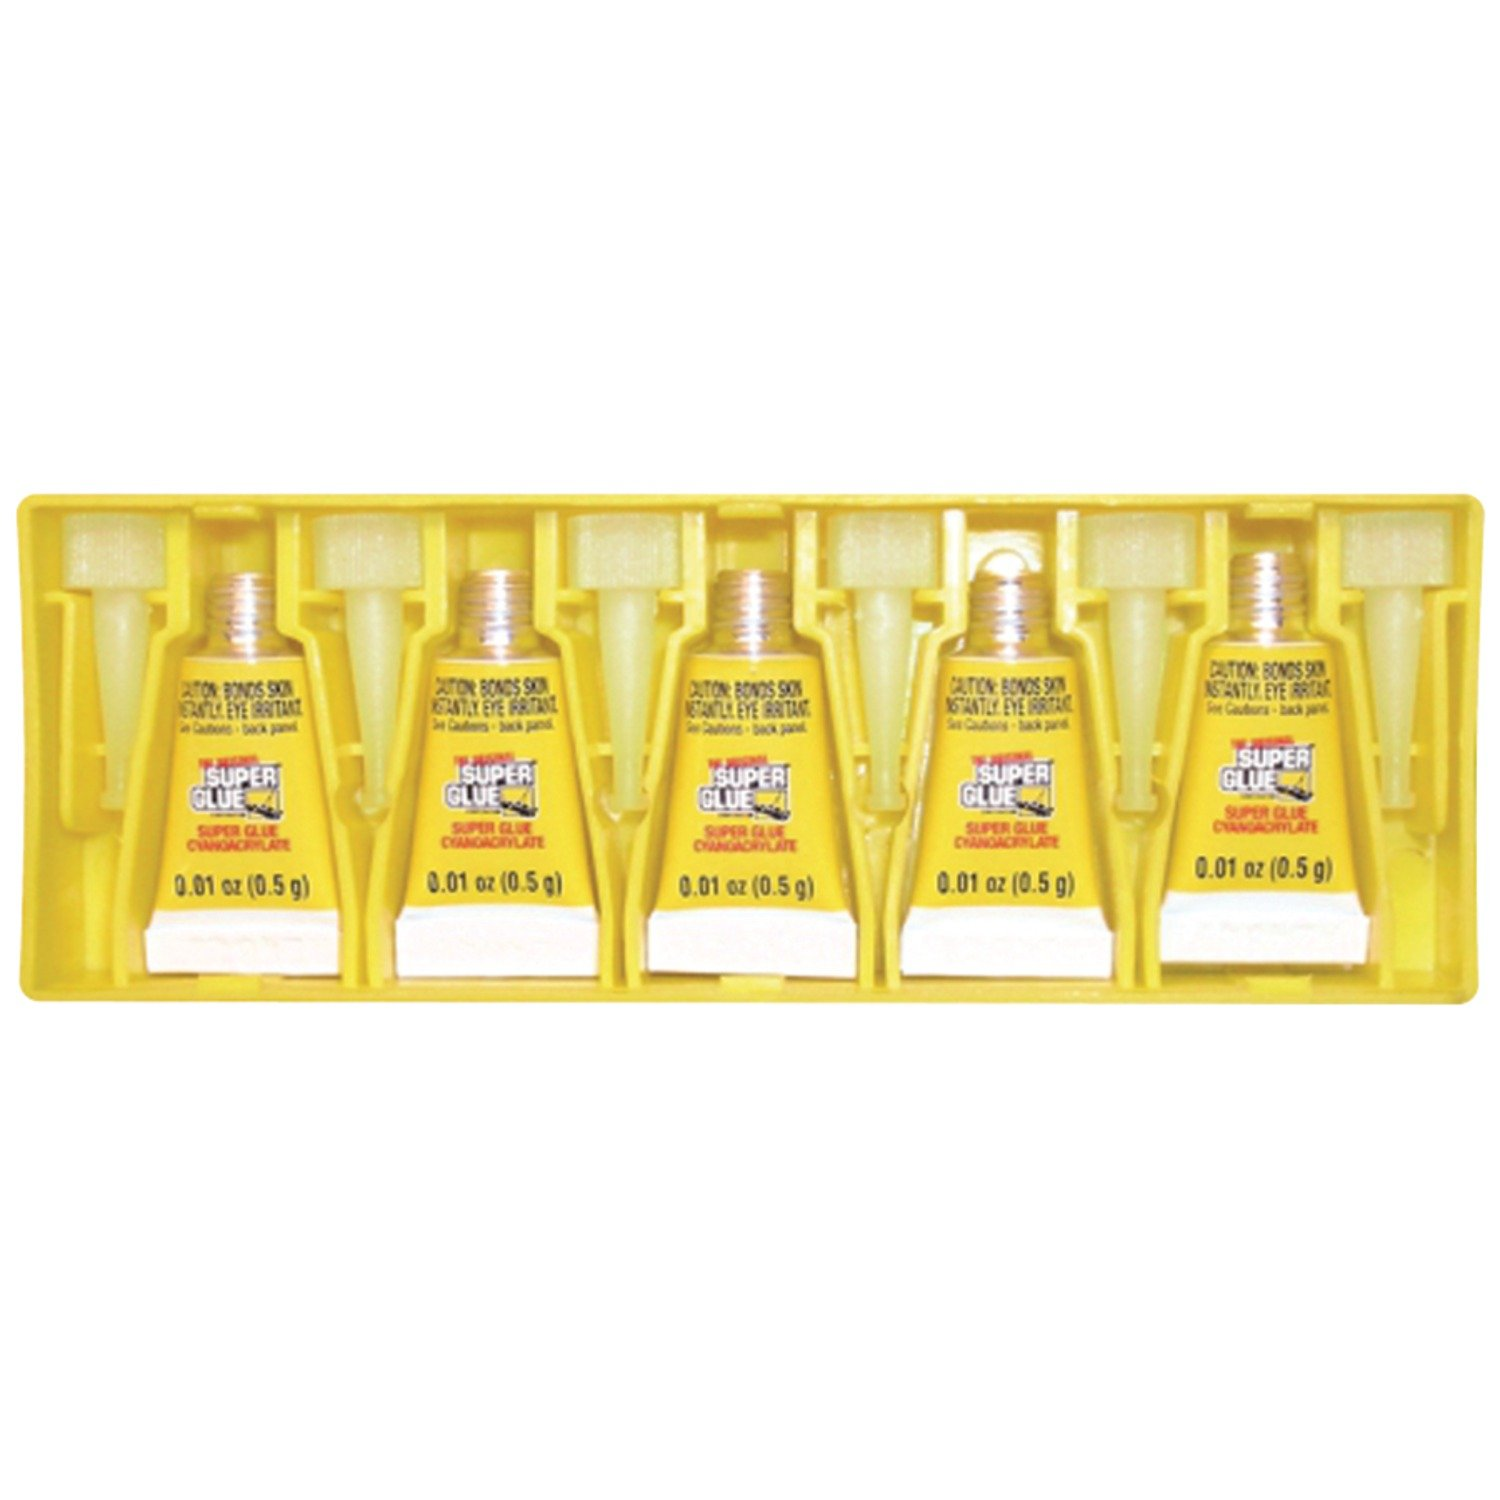 Super Glue The Original Superglue(r) 15175-12 Instant Adhesive Mini Tubes, 5 Pk